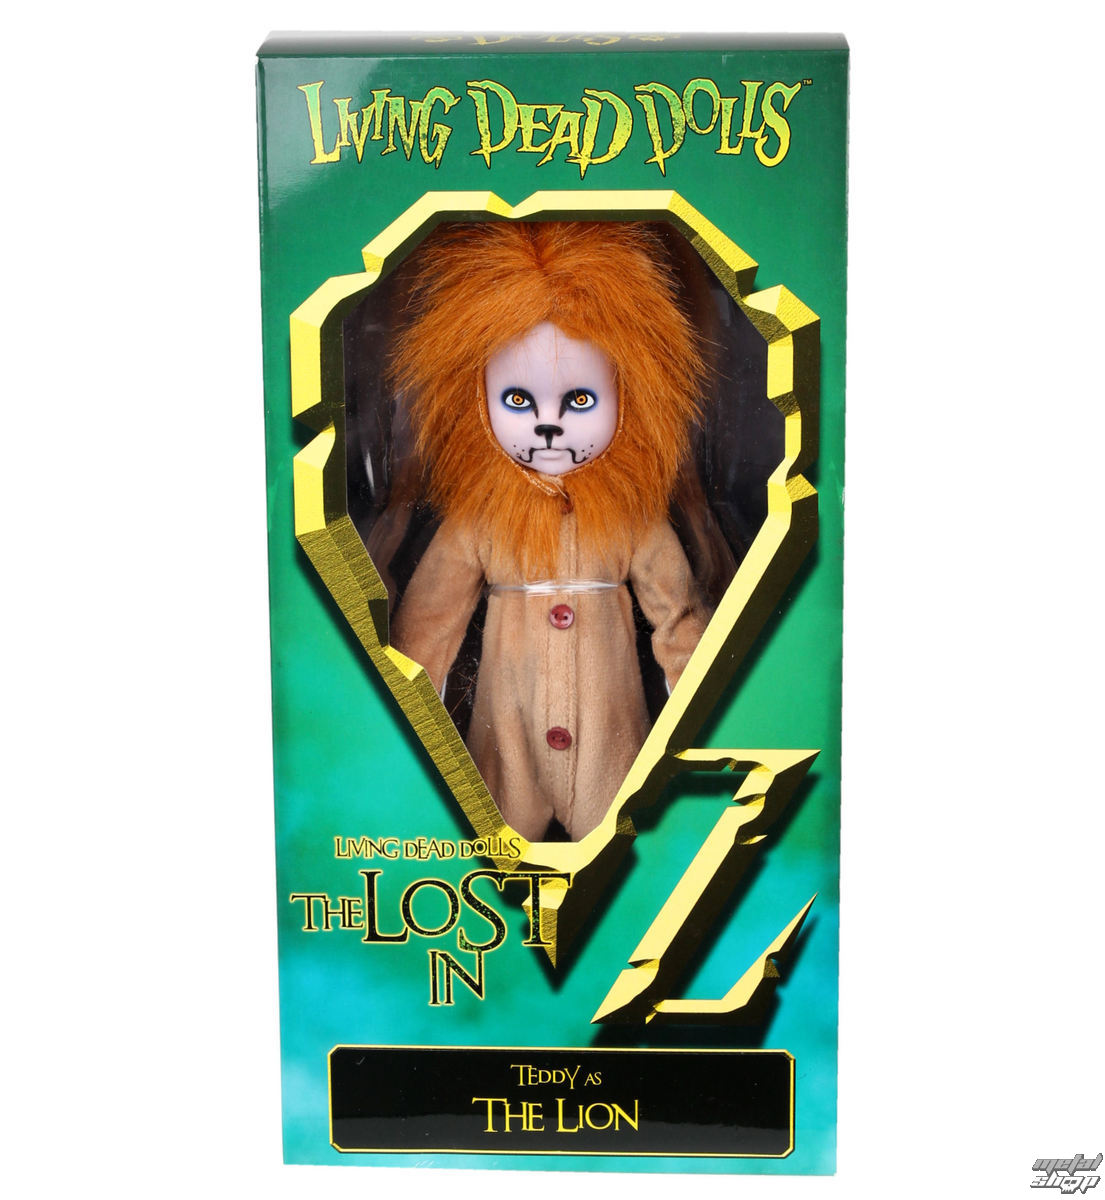 panenka LIVING DEAD DOLLS - Teddy as The Lion - MEZ94510-4